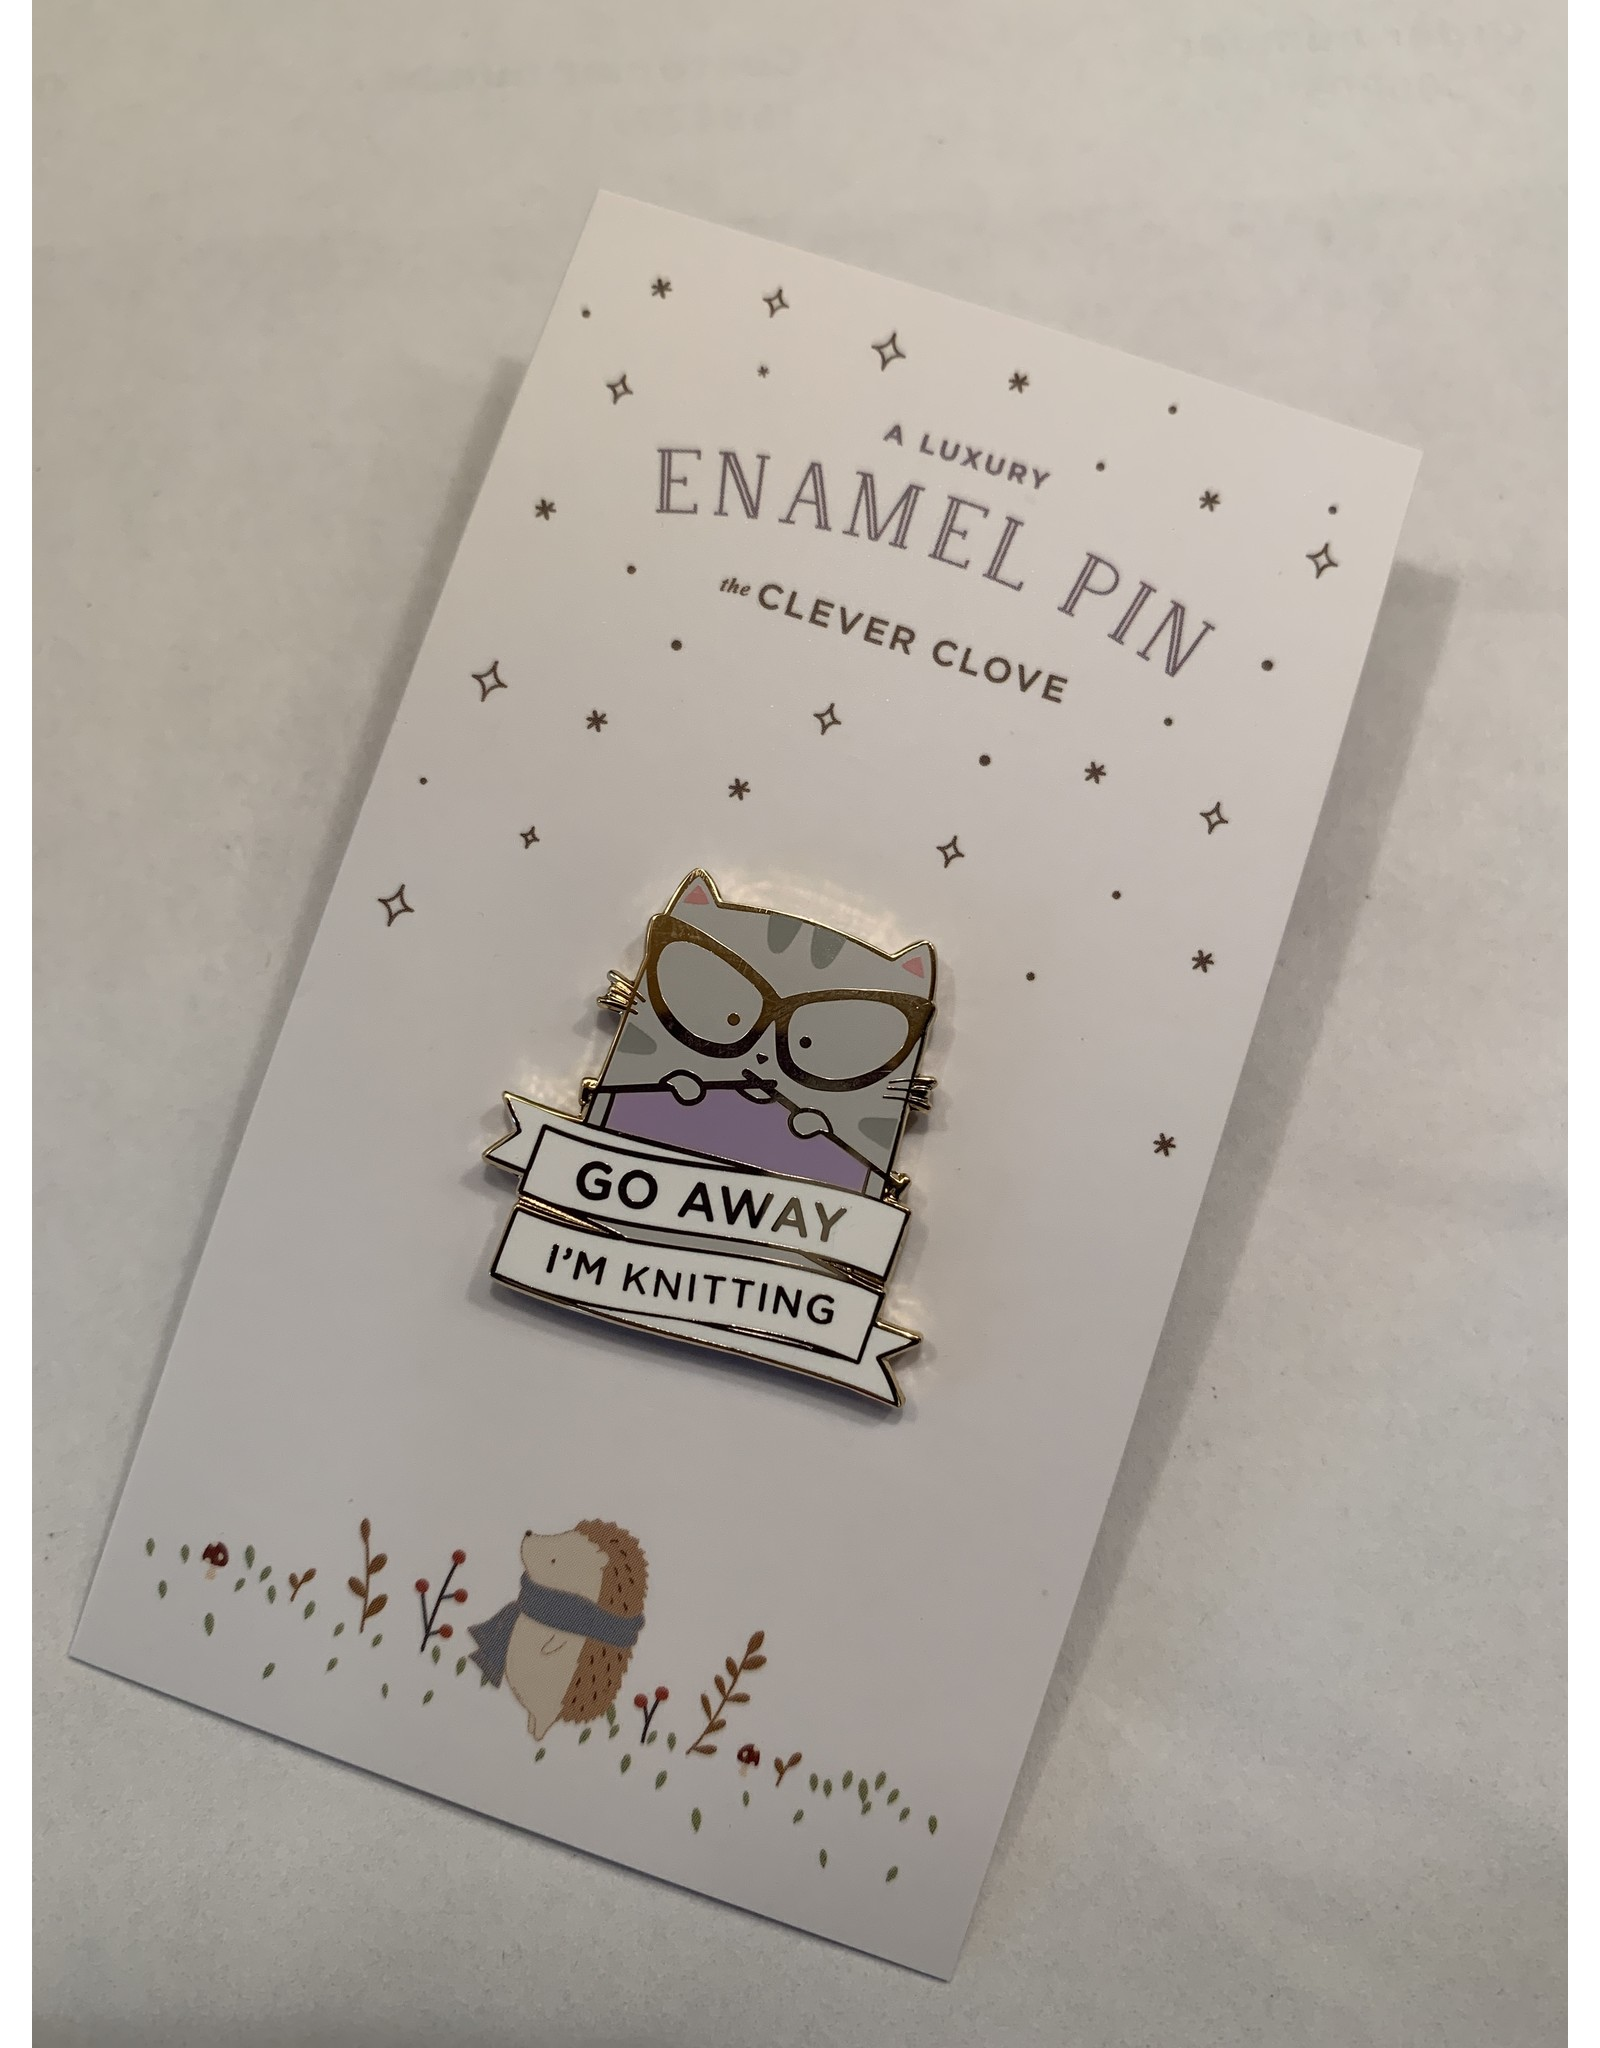 Clever Clove Clever Clove Enamel Pin